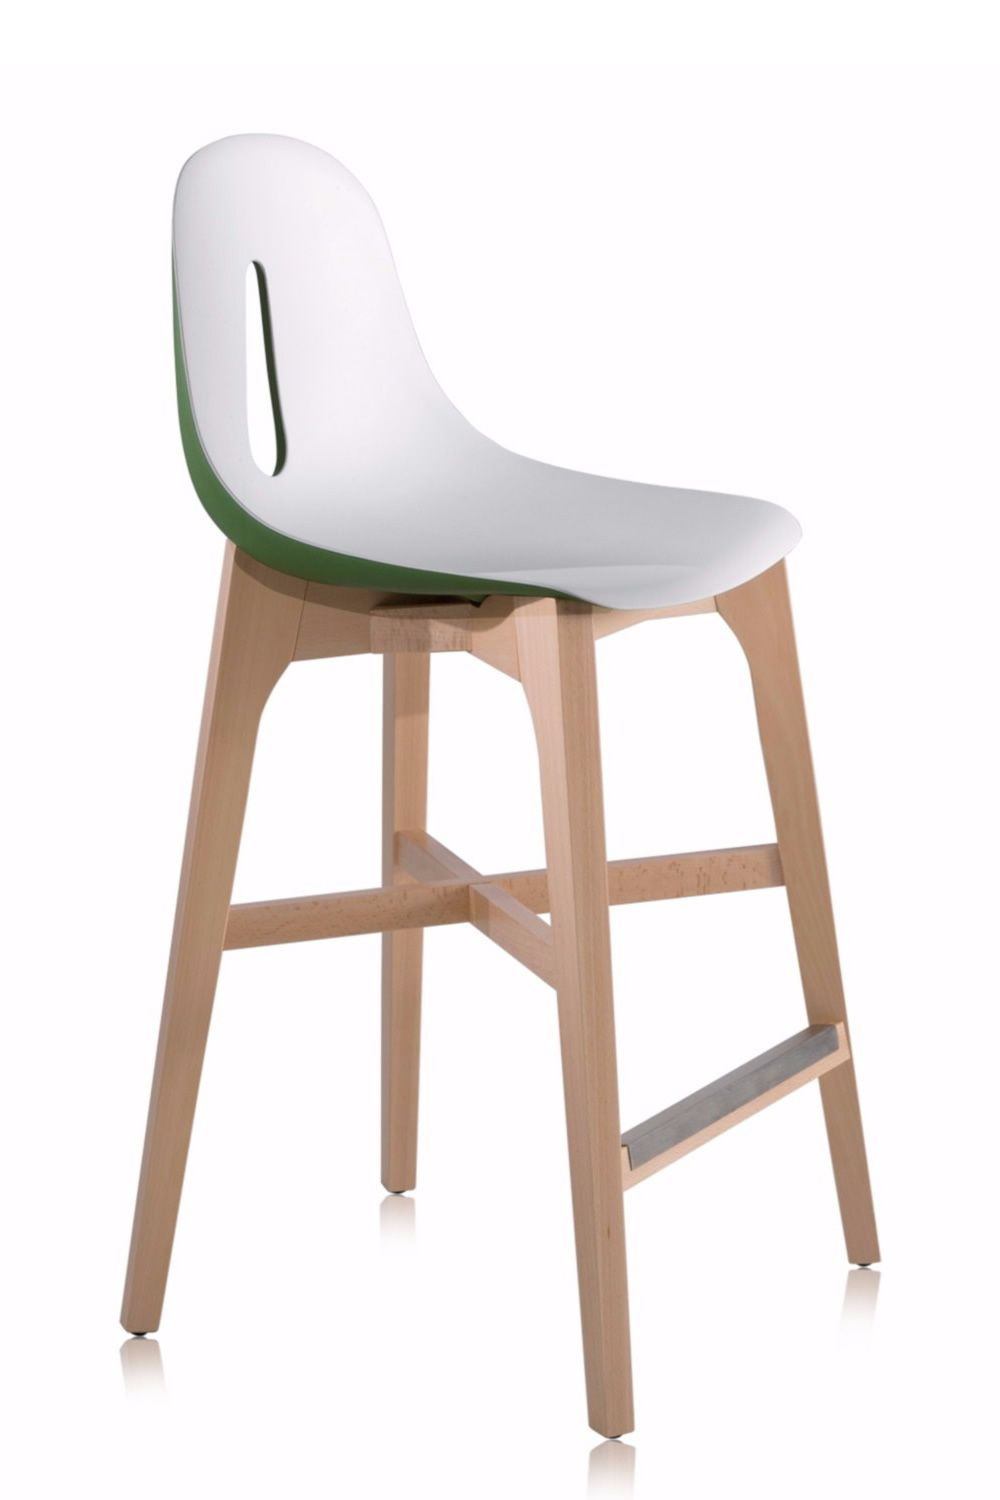 gotham wood sg tabouret design chairs more en bois et en polyur thane disponible dans